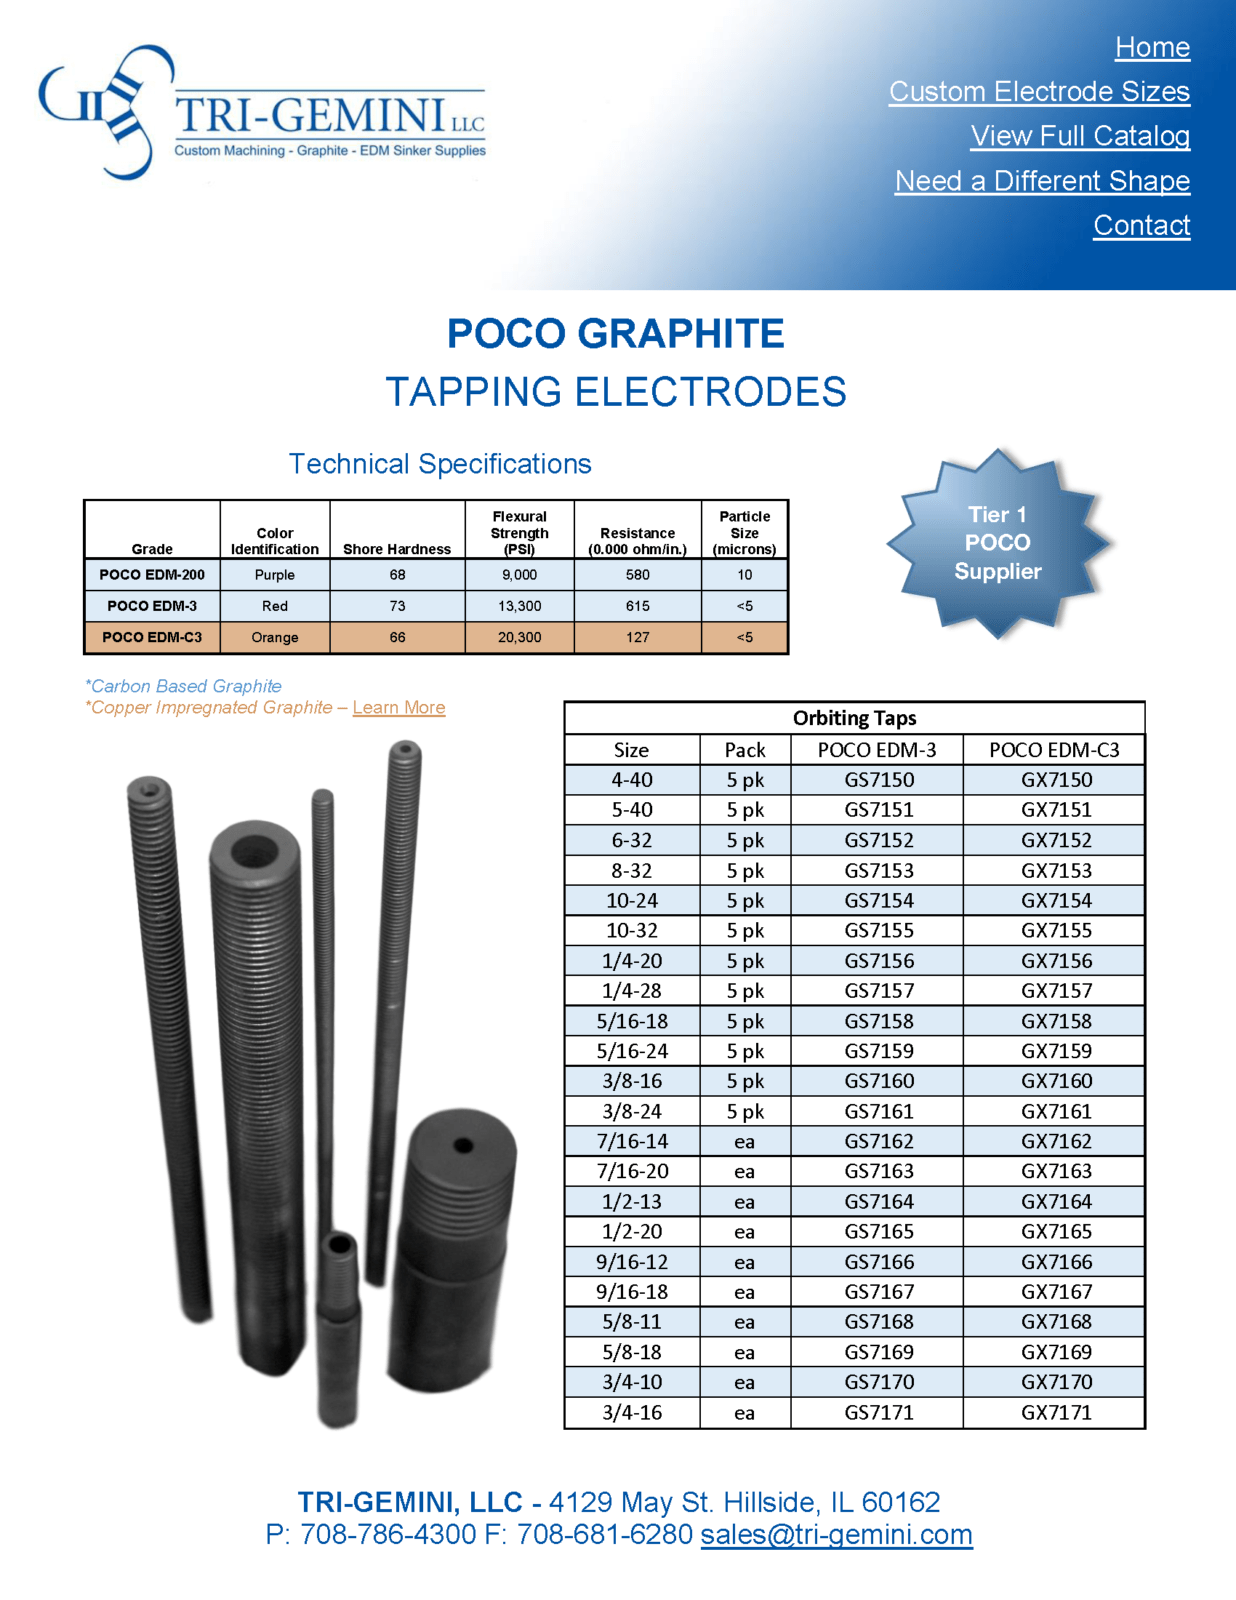 POCO Tapping Electrodes